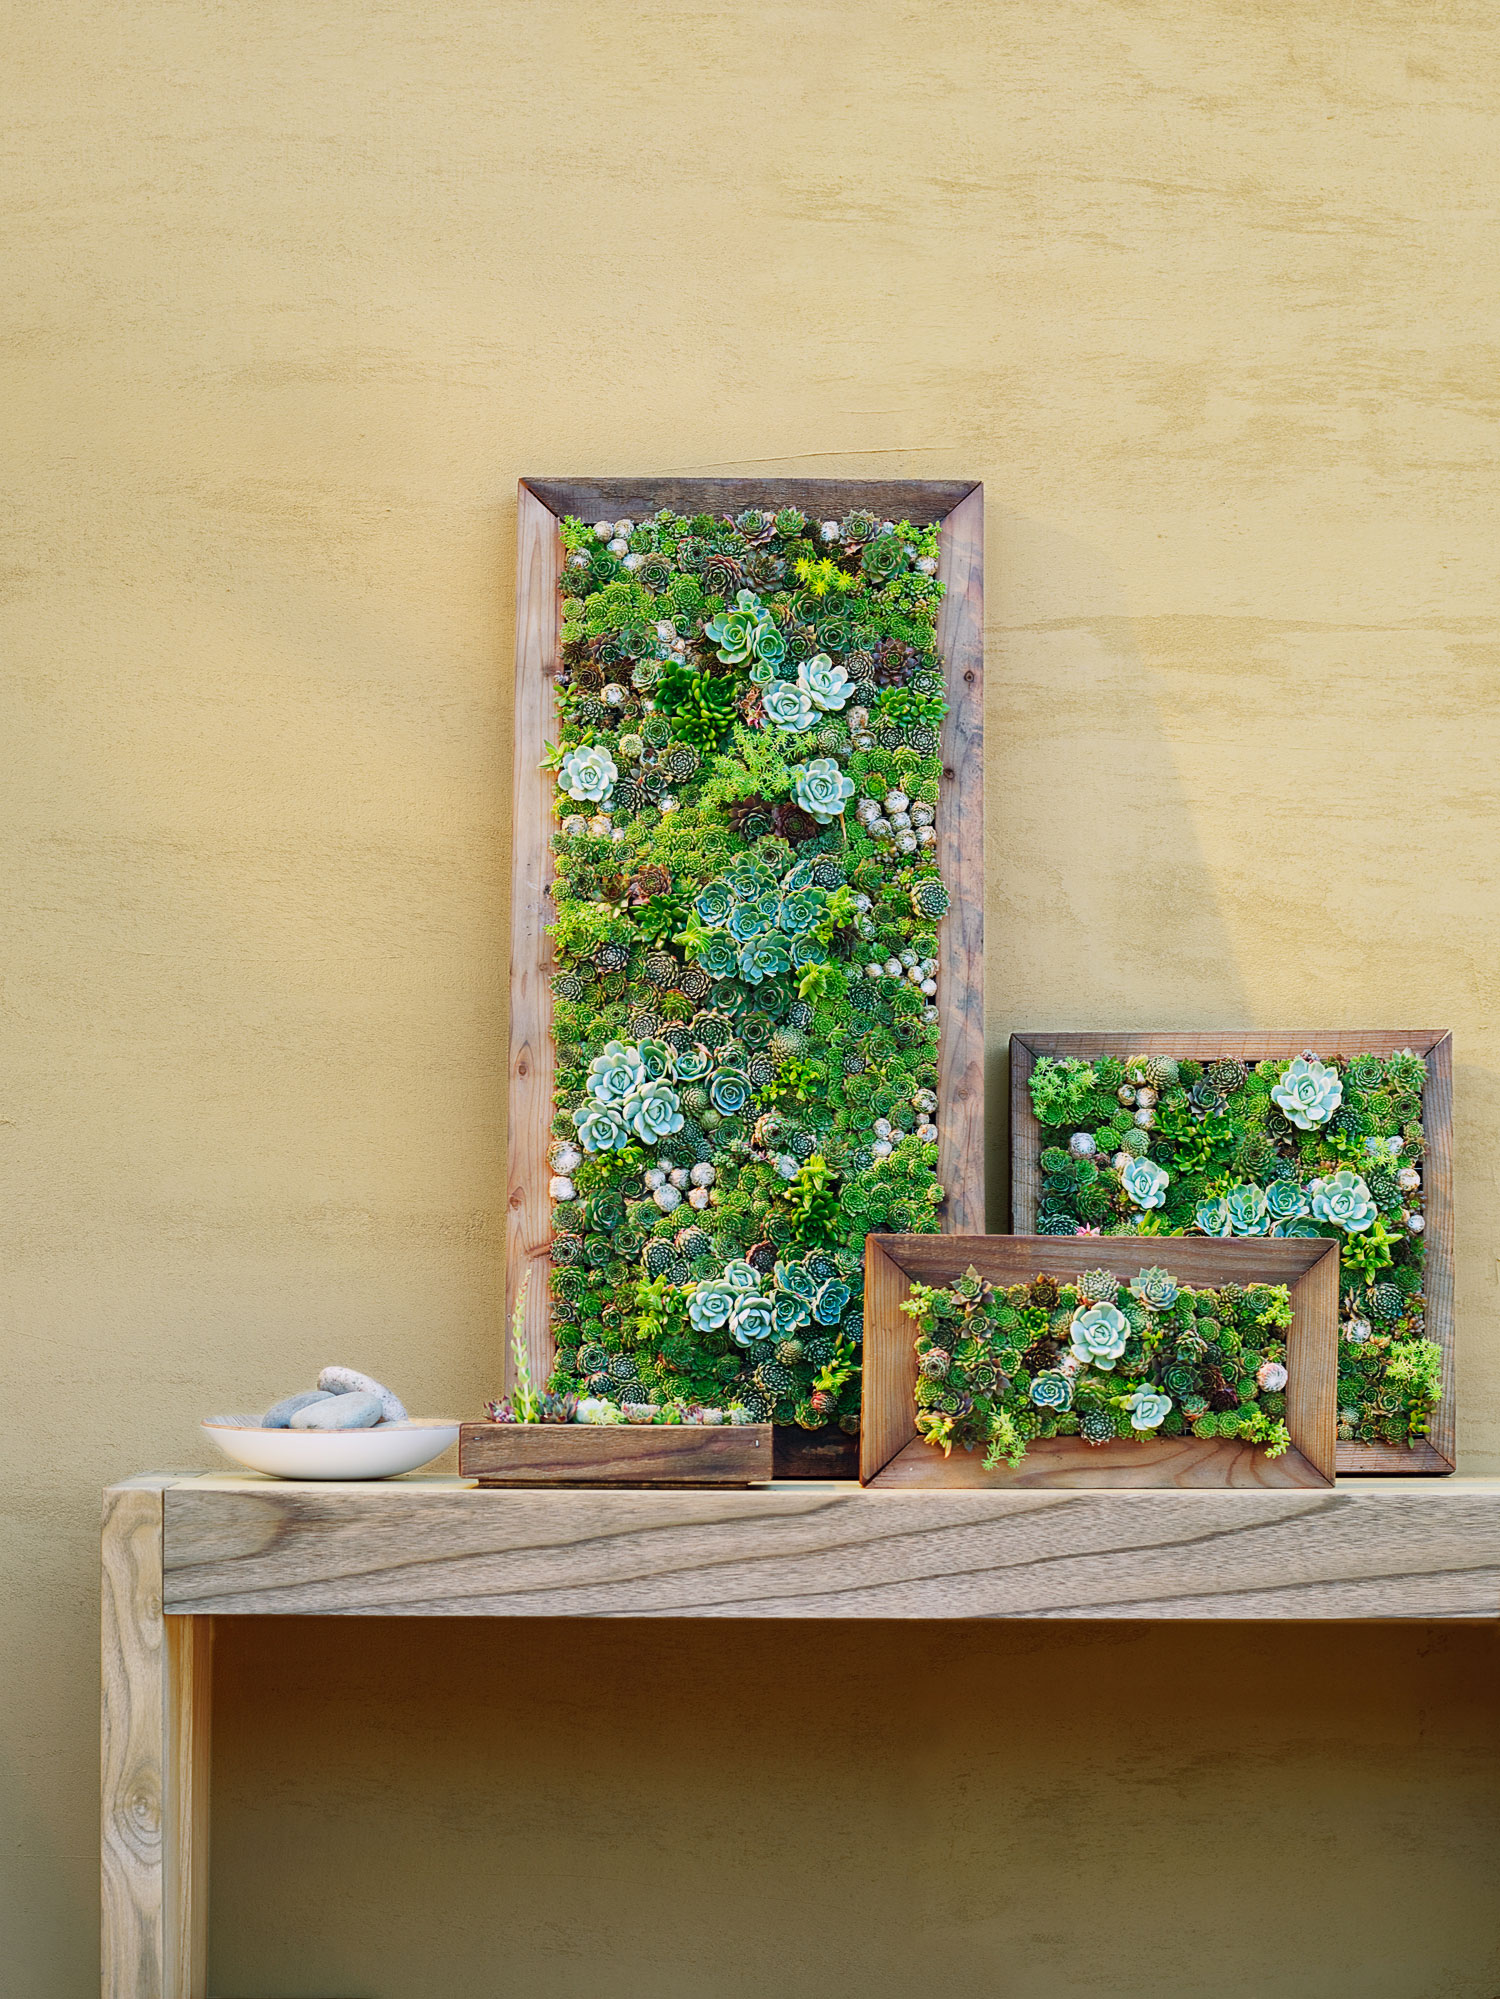 How to Design a Vertical Garden